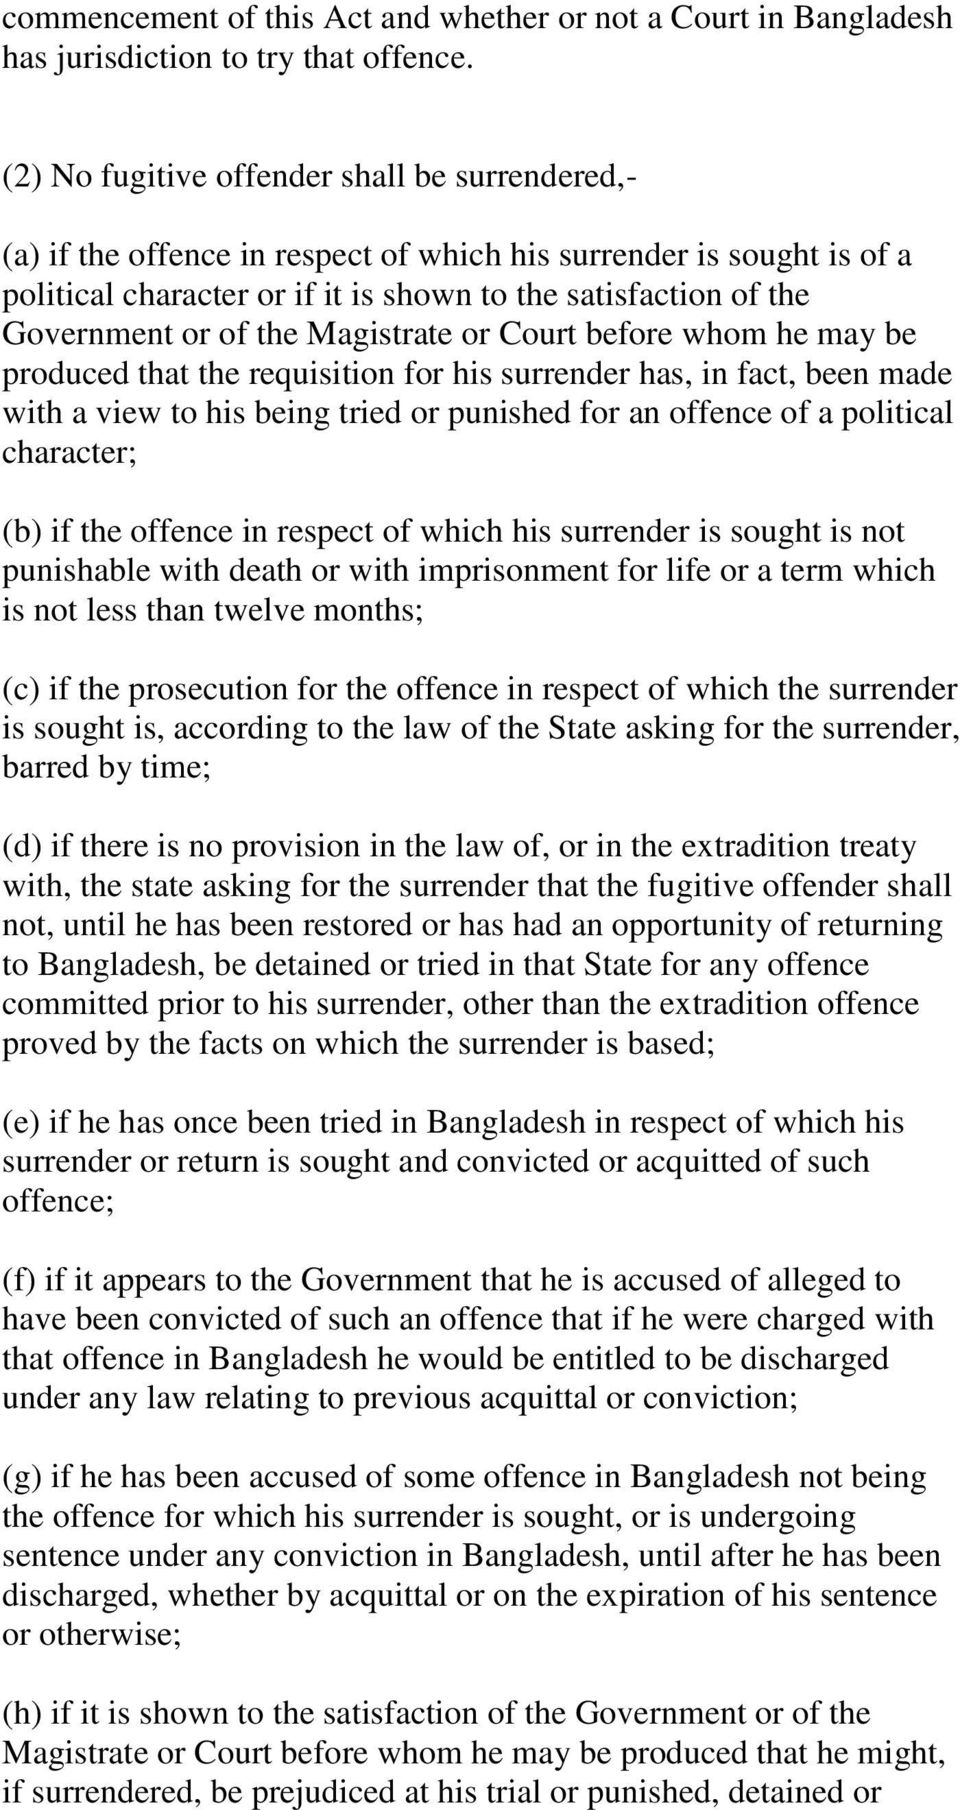 of the Magistrate or Court before whom he may be produced that the requisition for his surrender has, in fact, been made with a view to his being tried or punished for an offence of a political